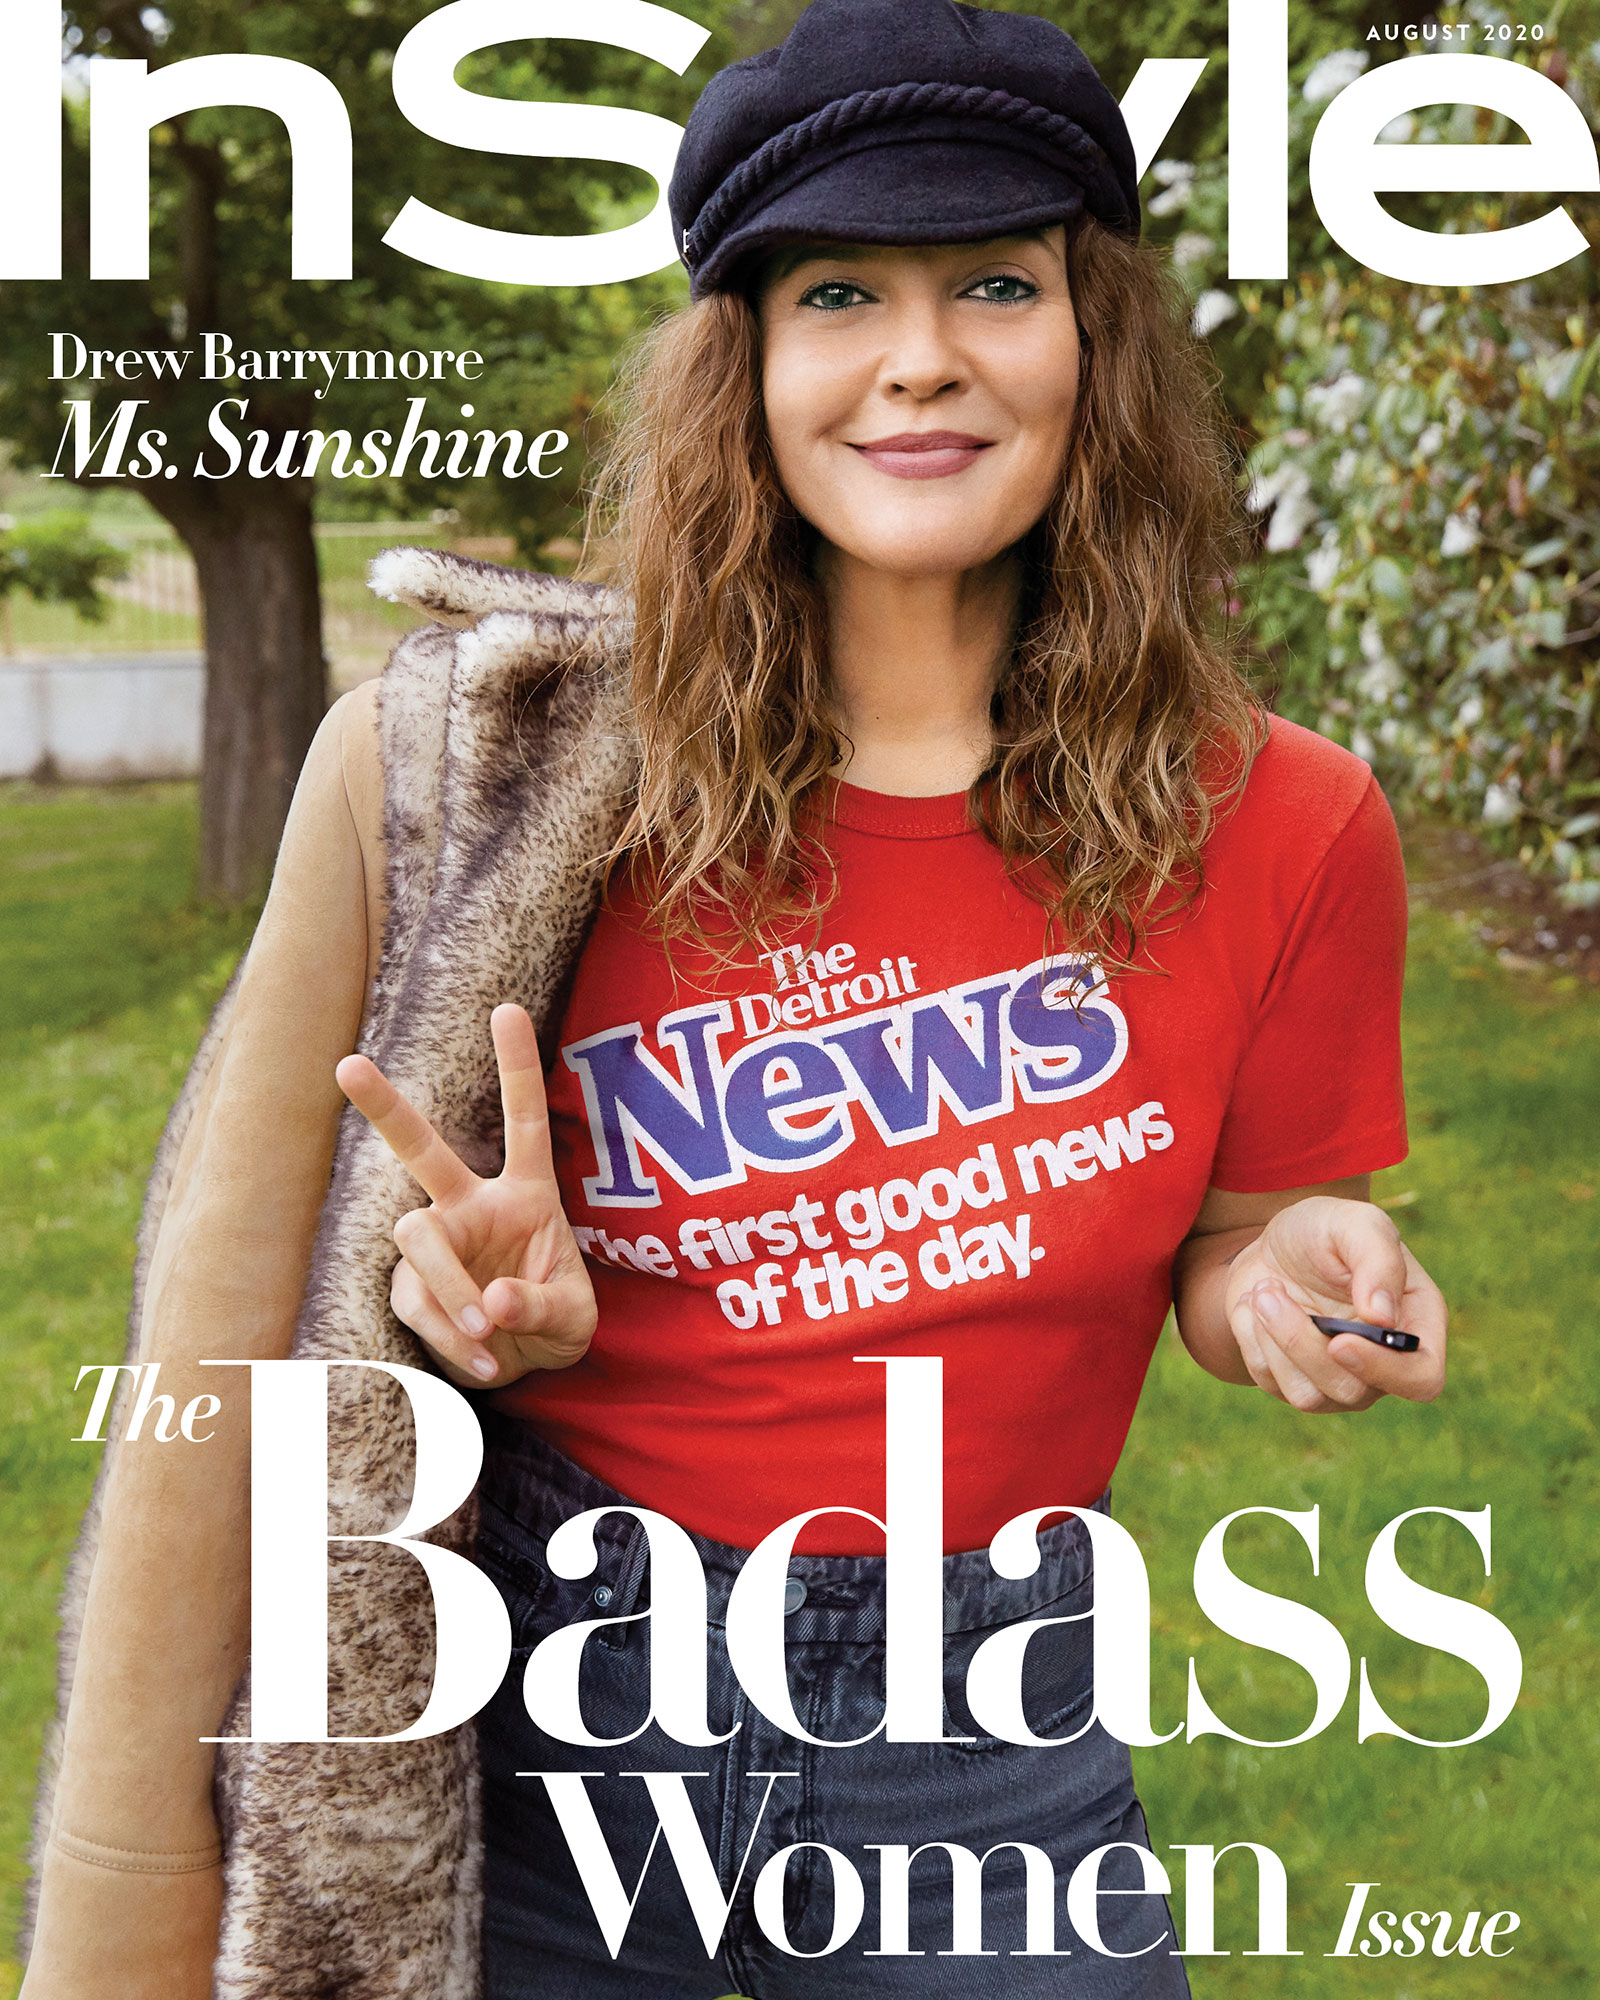 Drew Barrymore InStyle Cover August 2020